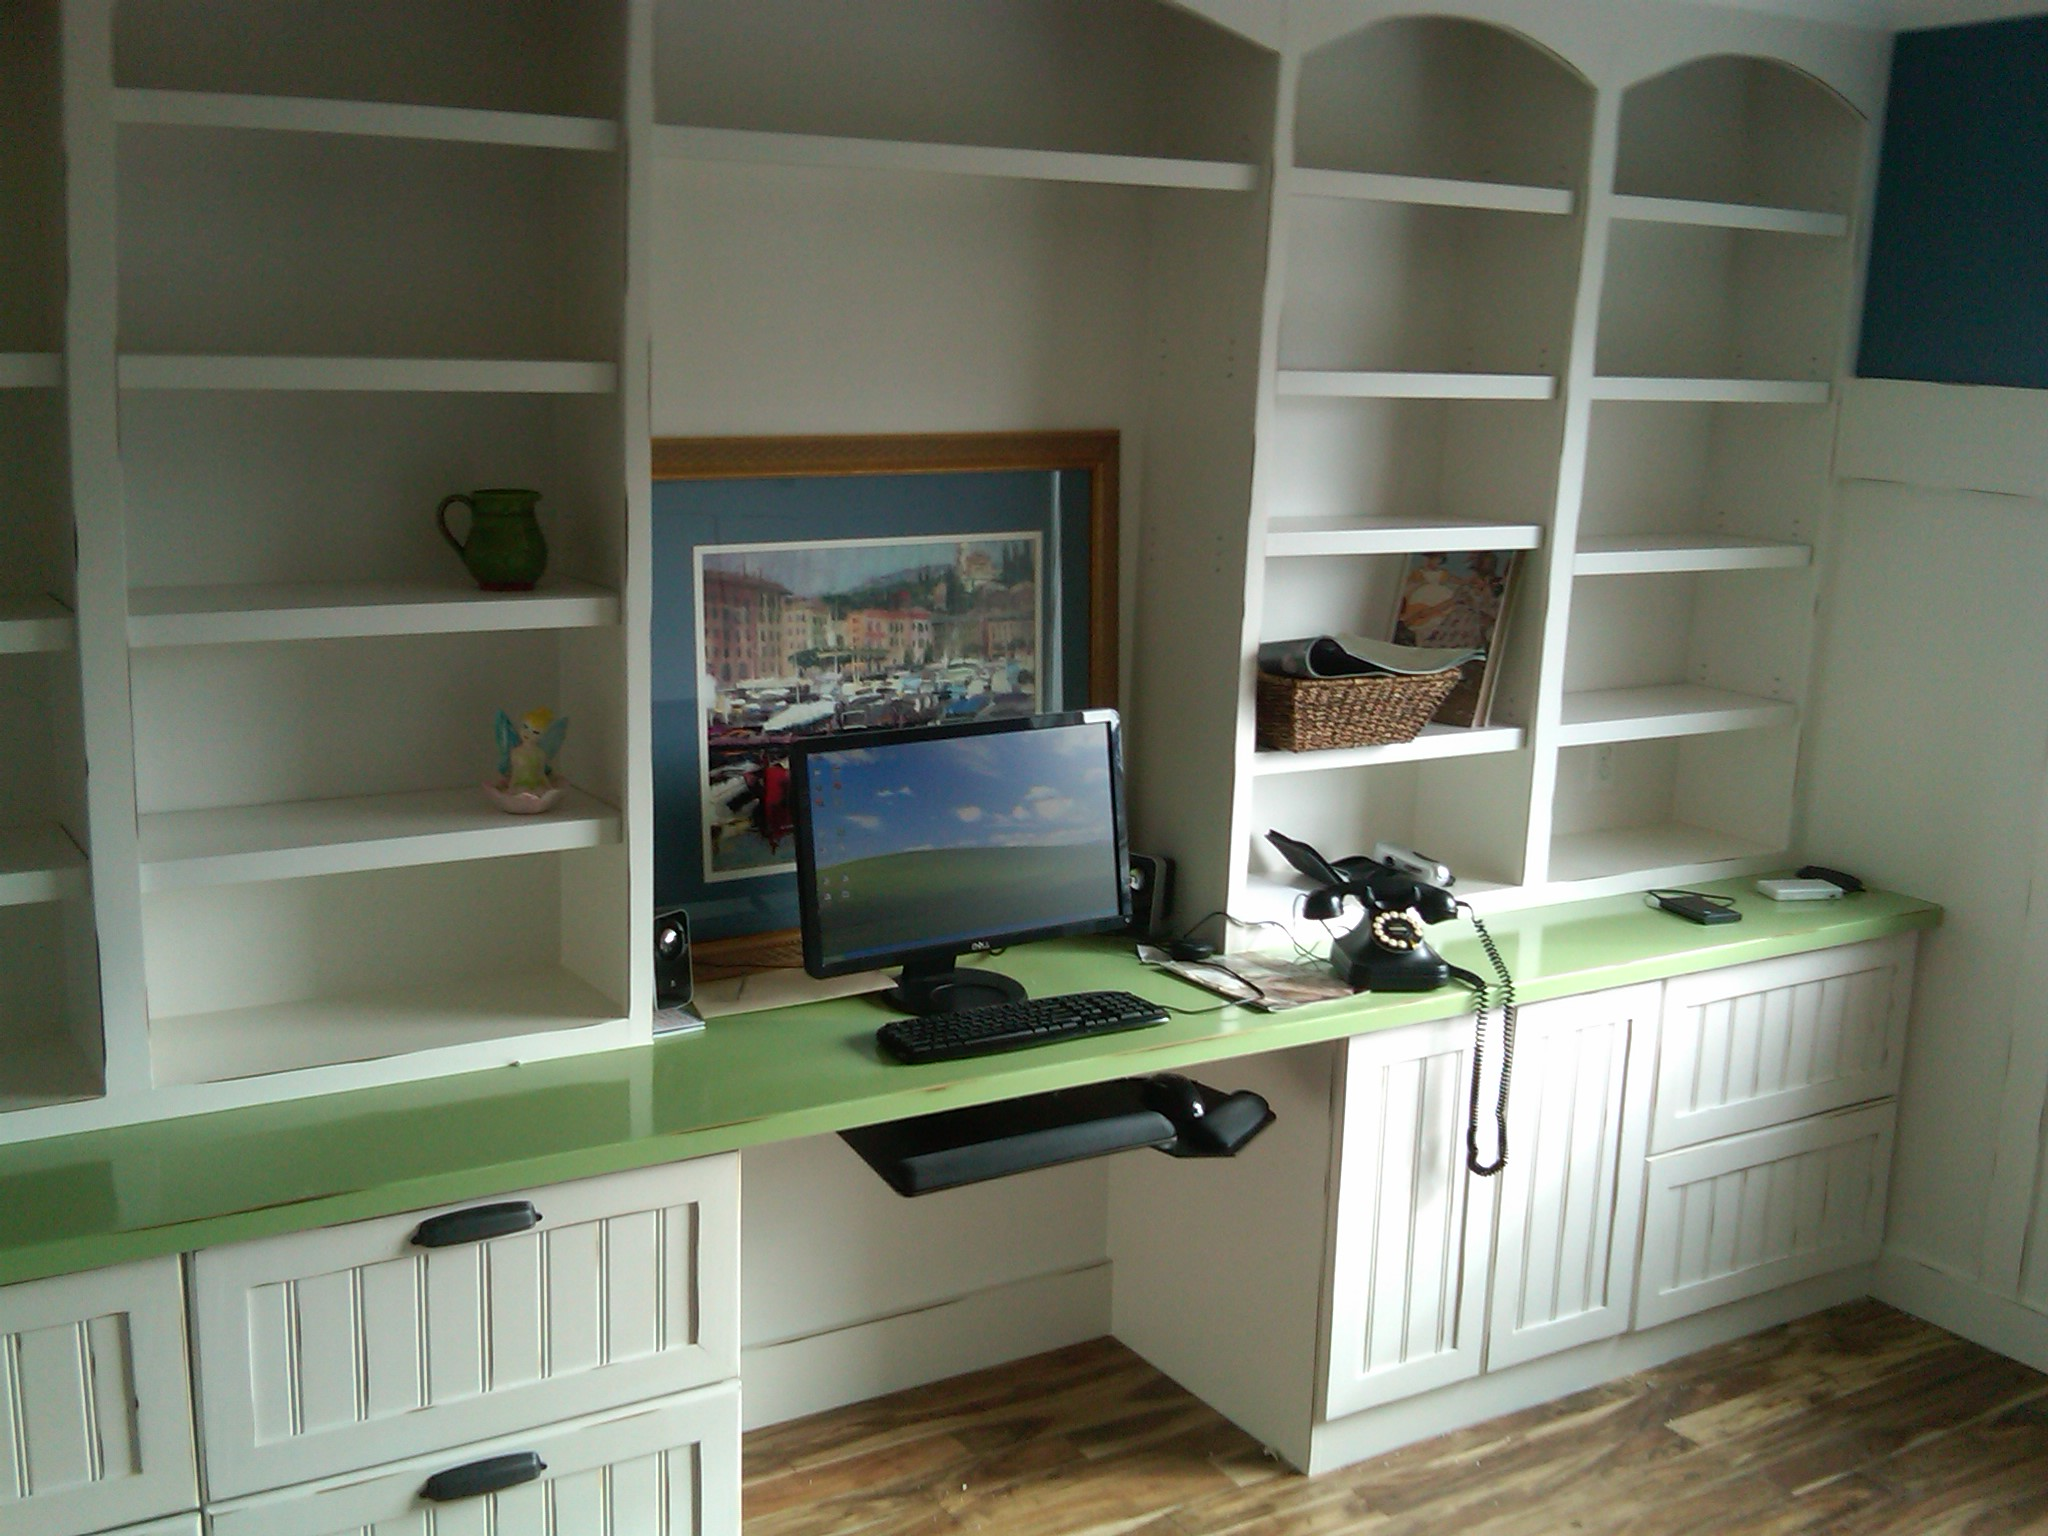 - Download Built In Desk Designs For Kitchen Plans DIY Woodwork Design Cad  Previous29lkm